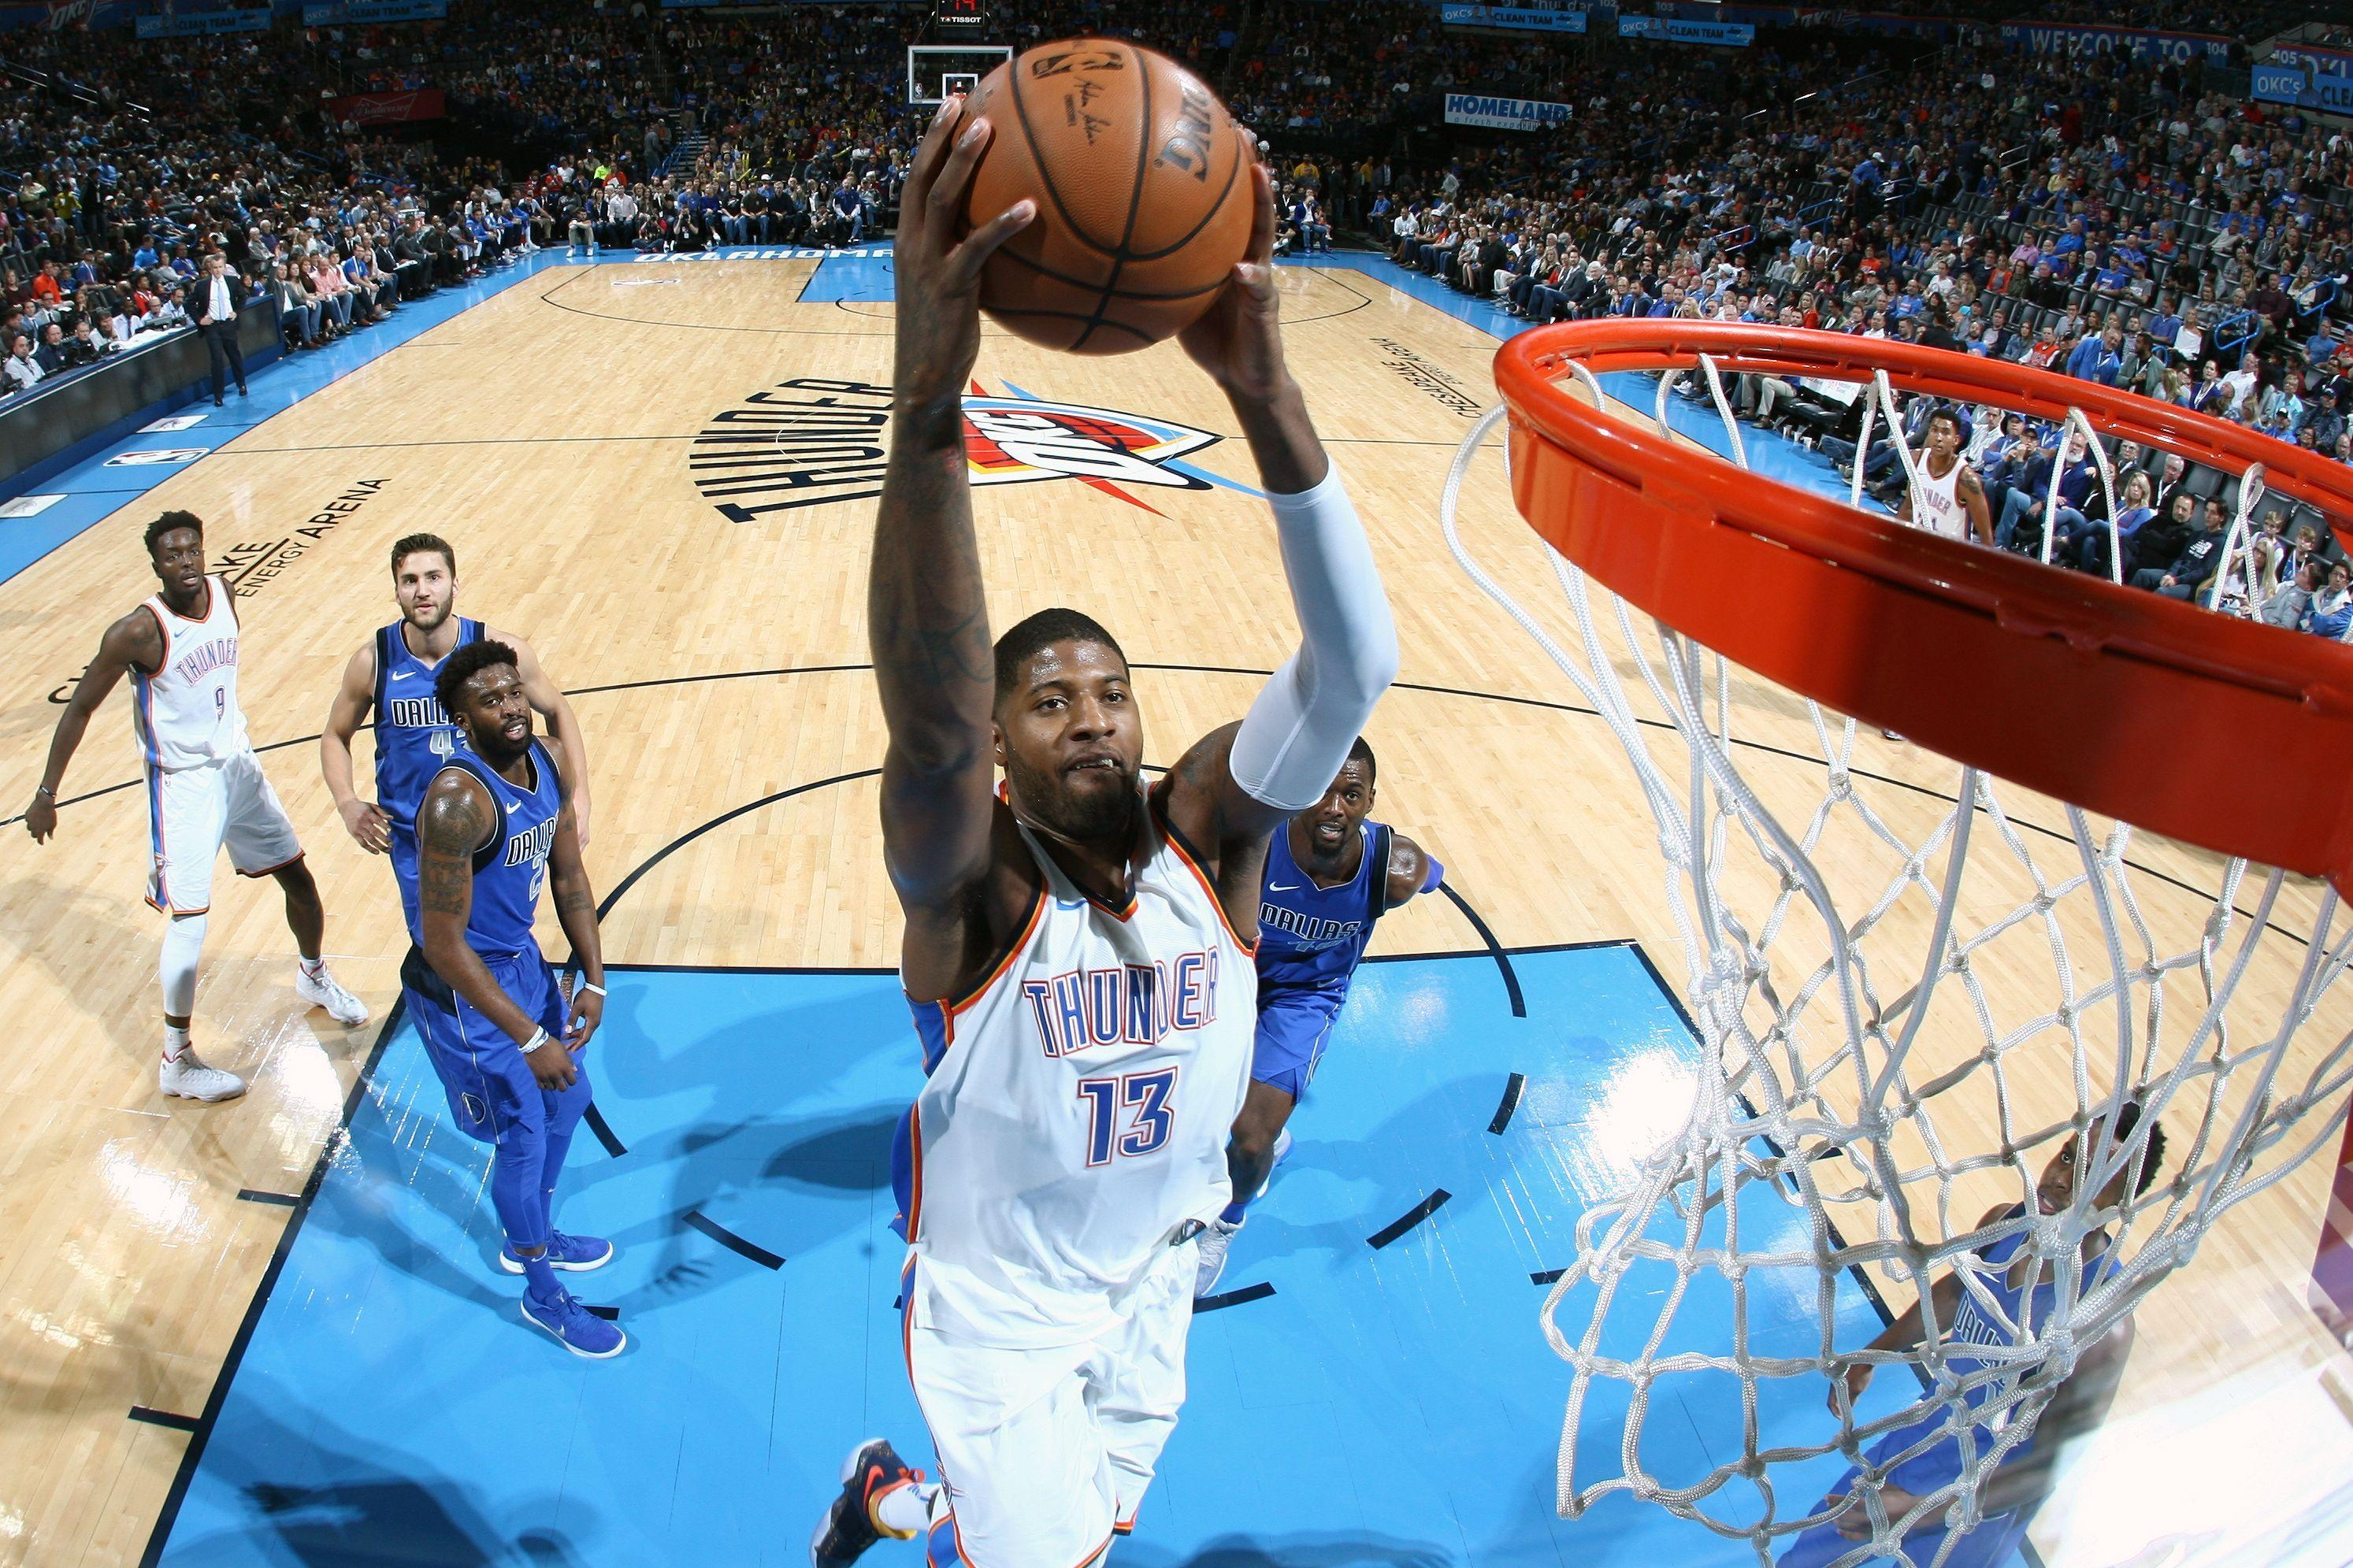 Oklahoma City Thunder: Paul George putting the team on his back